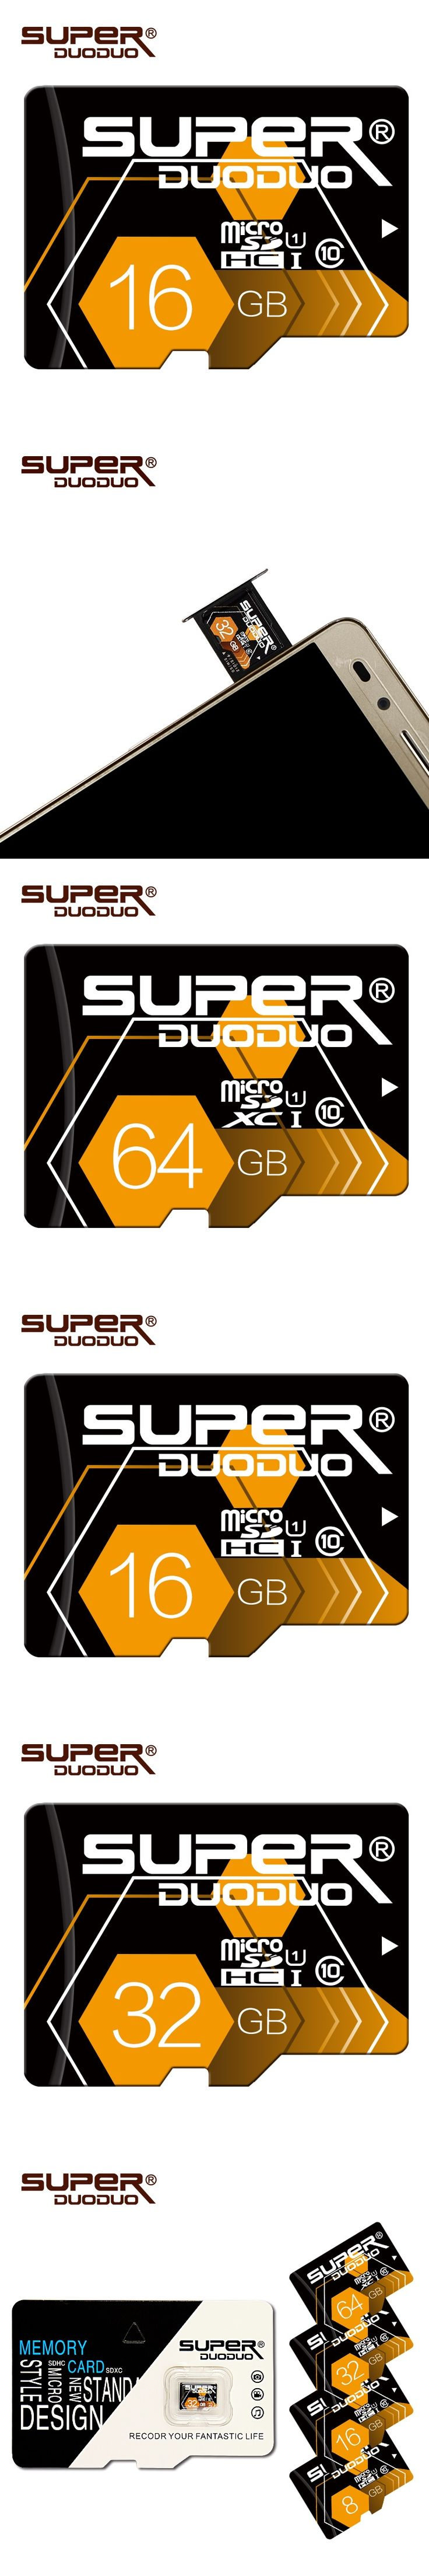 Superduoduo memory Card high speed 32GB Micro Sd Card 64GB Flash card 16GB 8GB 4GB Microsd cartao de memoria with retail package